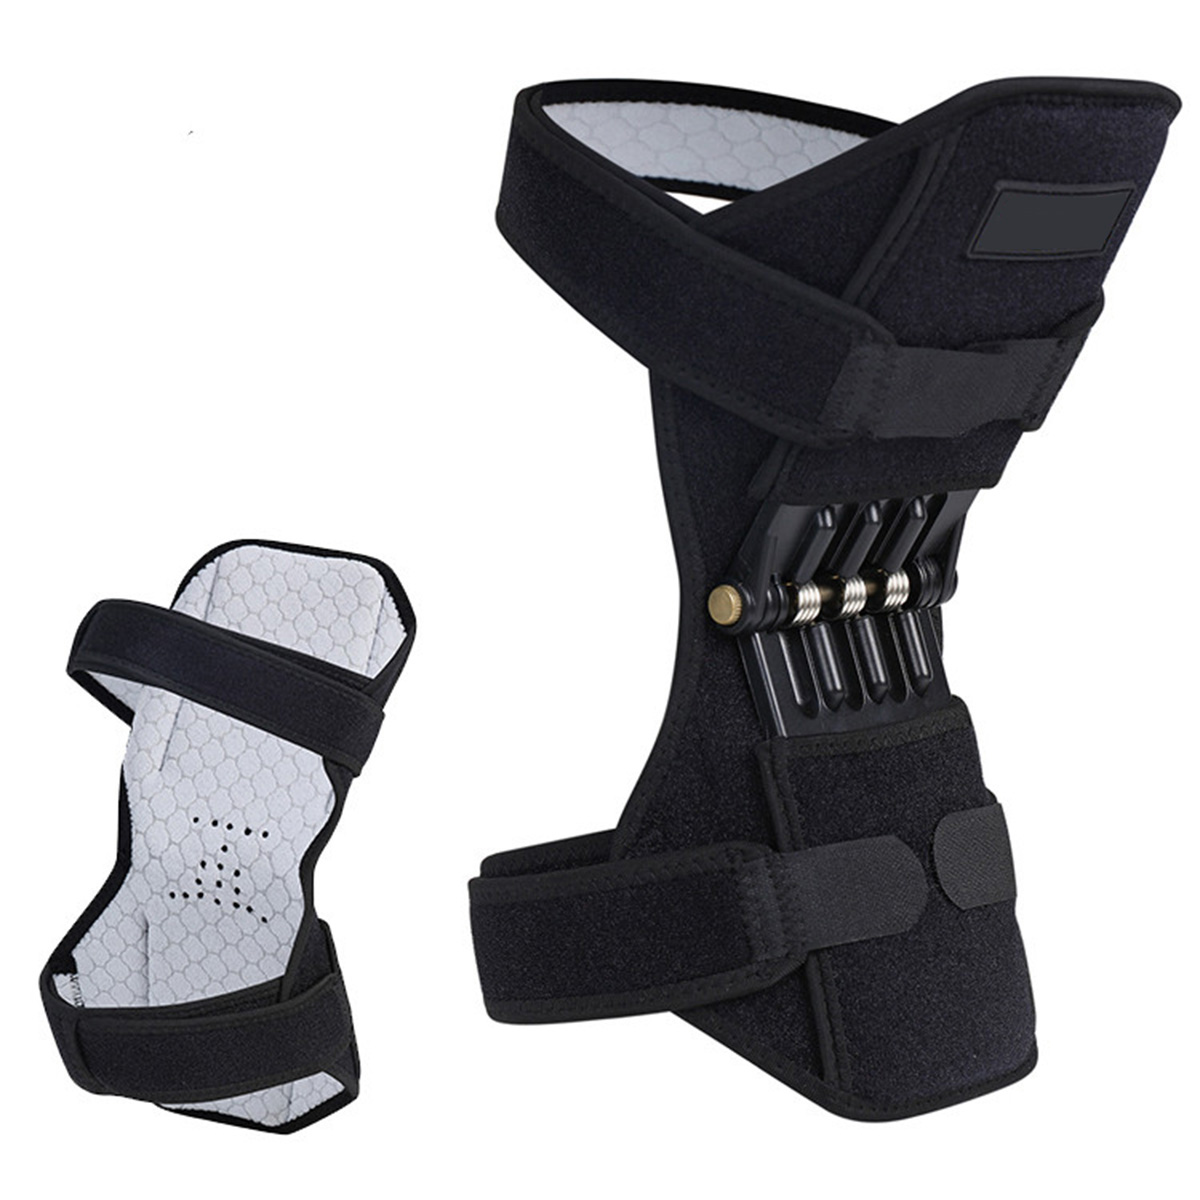 1Pcs Joint Support Knee Pads Rebound Power Spring Force Knee Stabilizer Brace Knee Support Leg Care Treatment Tool Power Lift